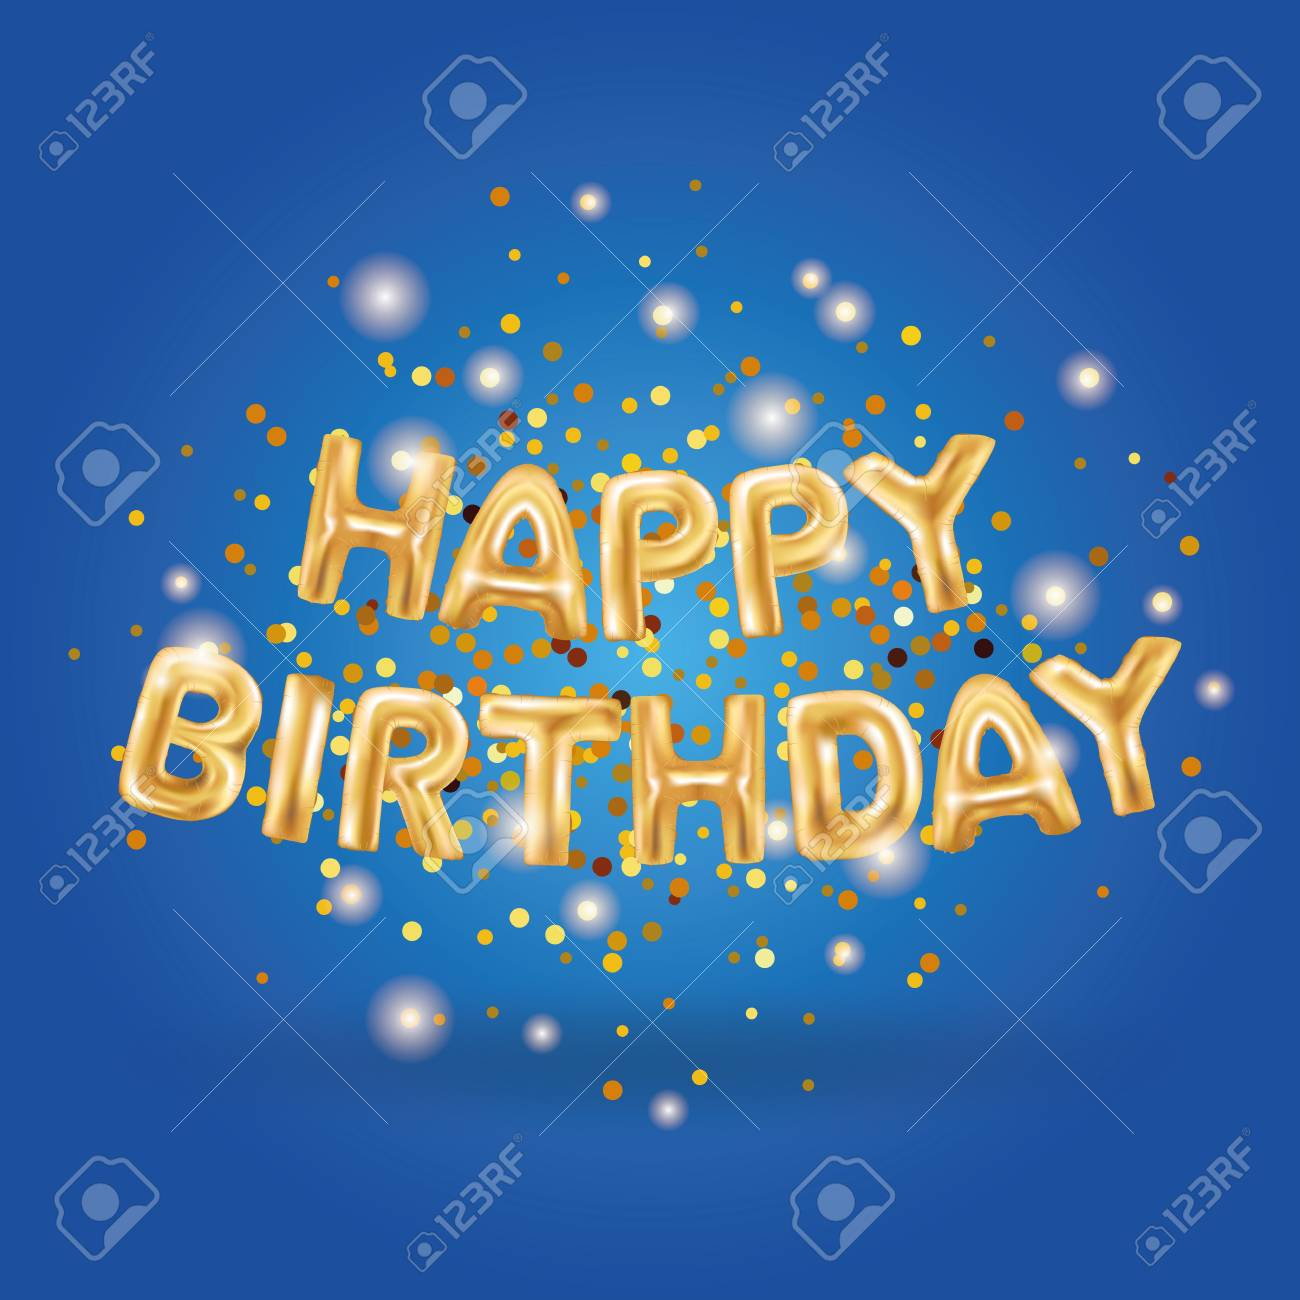 Gold Balloons Happy Birthday On Blue Golden Balloon Sparkles Royalty Free Cliparts Vectors And Stock Illustration Image 72562419